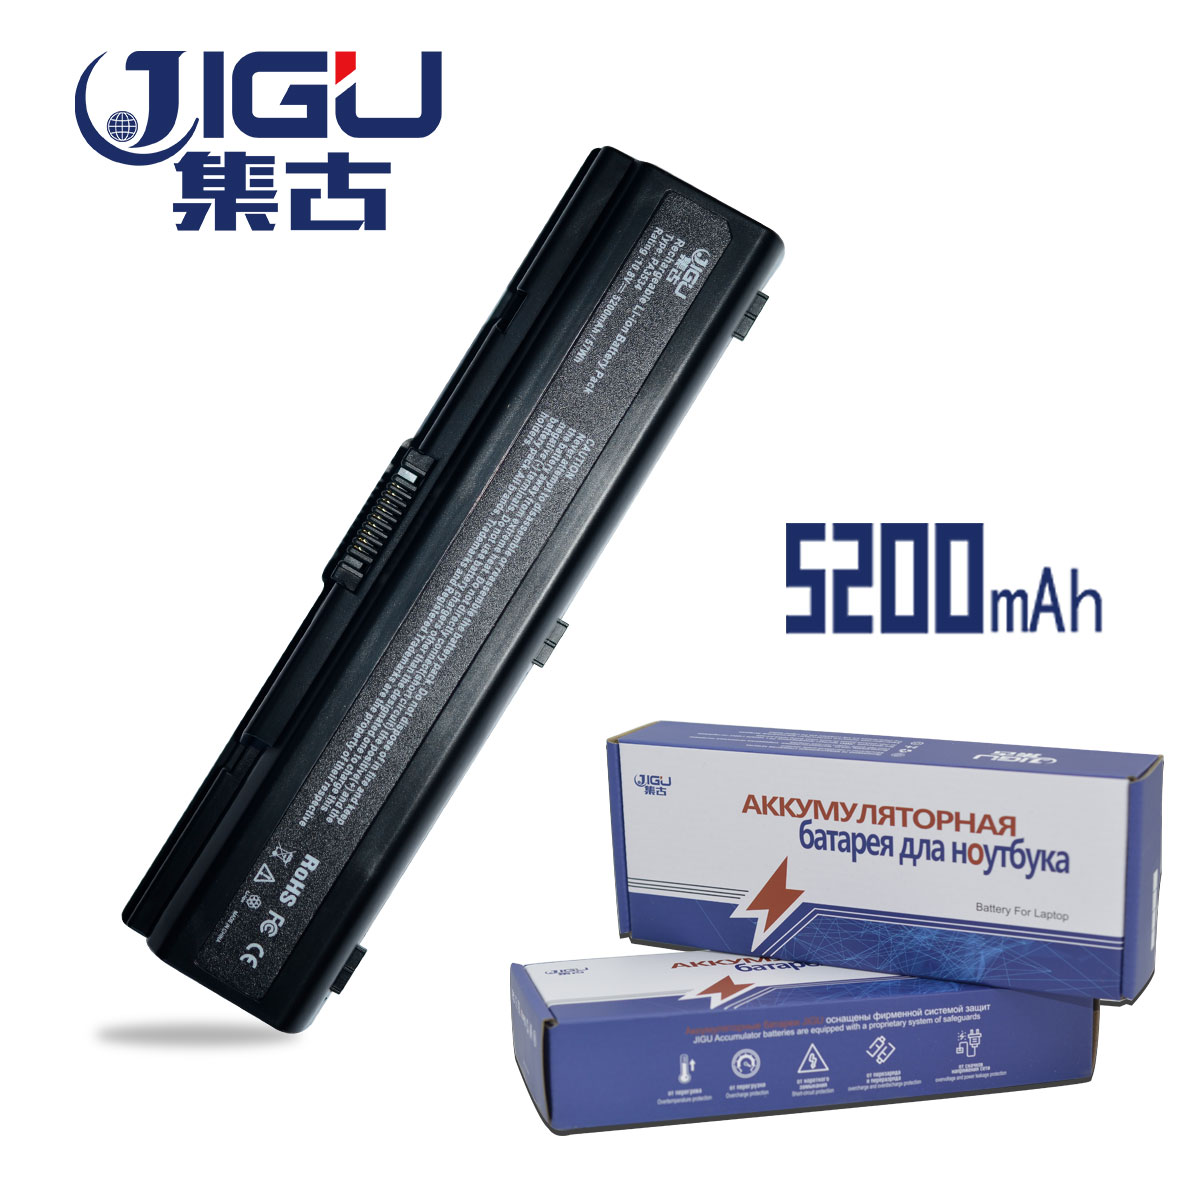 JIGU Laptop Battery For <font><b>Toshiba</b></font> Satellite A300 A500 Pro L550 L450 L300 A200 A210 A350 <font><b>L500</b></font> PA3534U-1BRS PA3535U-1BAS image